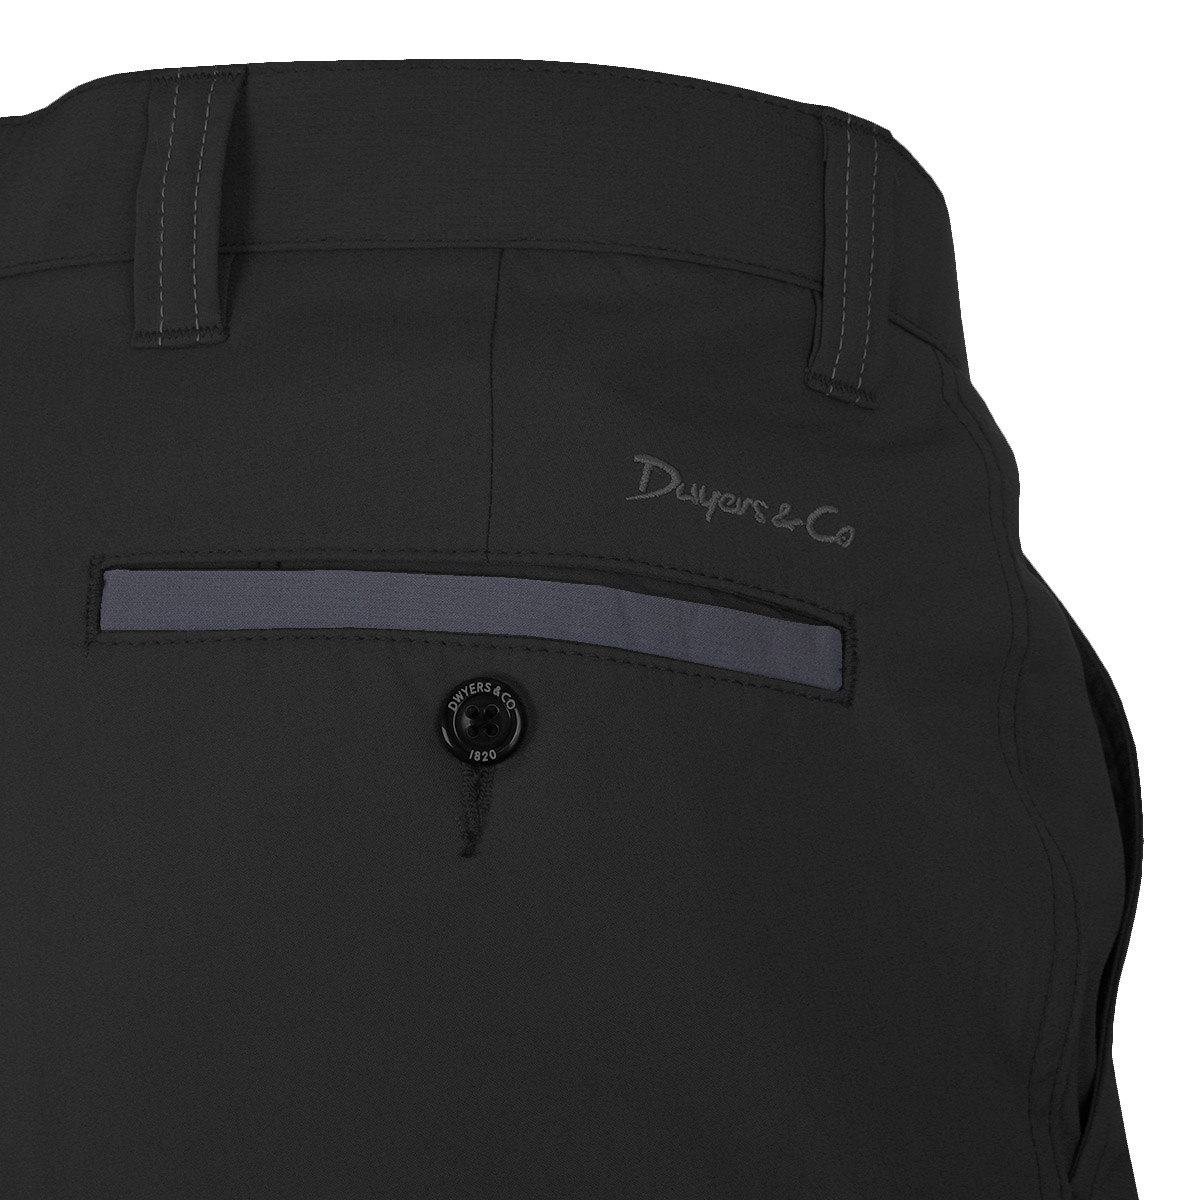 Dwyers-amp-Co-Mens-Matchplay-Stretch-Lightweight-Golf-Trousers-38-OFF-RRP thumbnail 8